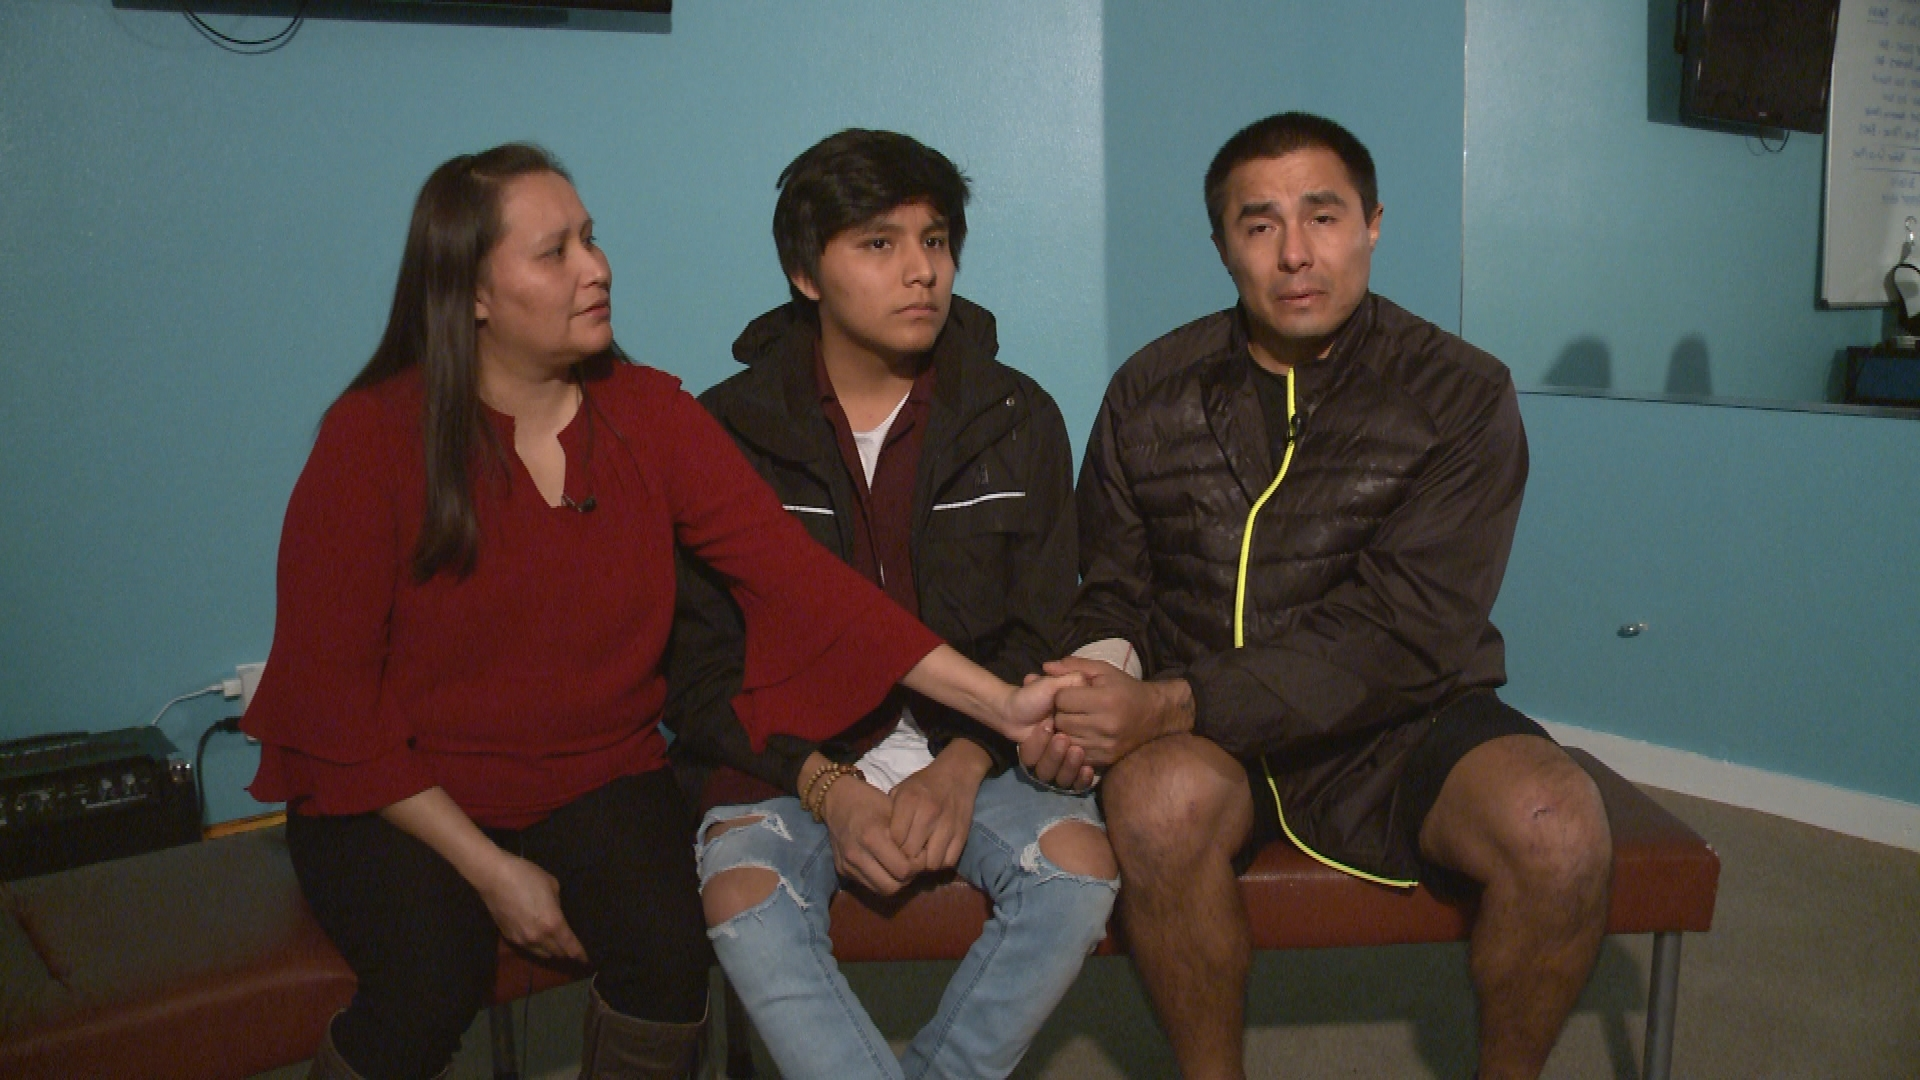 The Henderson family recounts their harrowing experience in a road rage shooting_592863